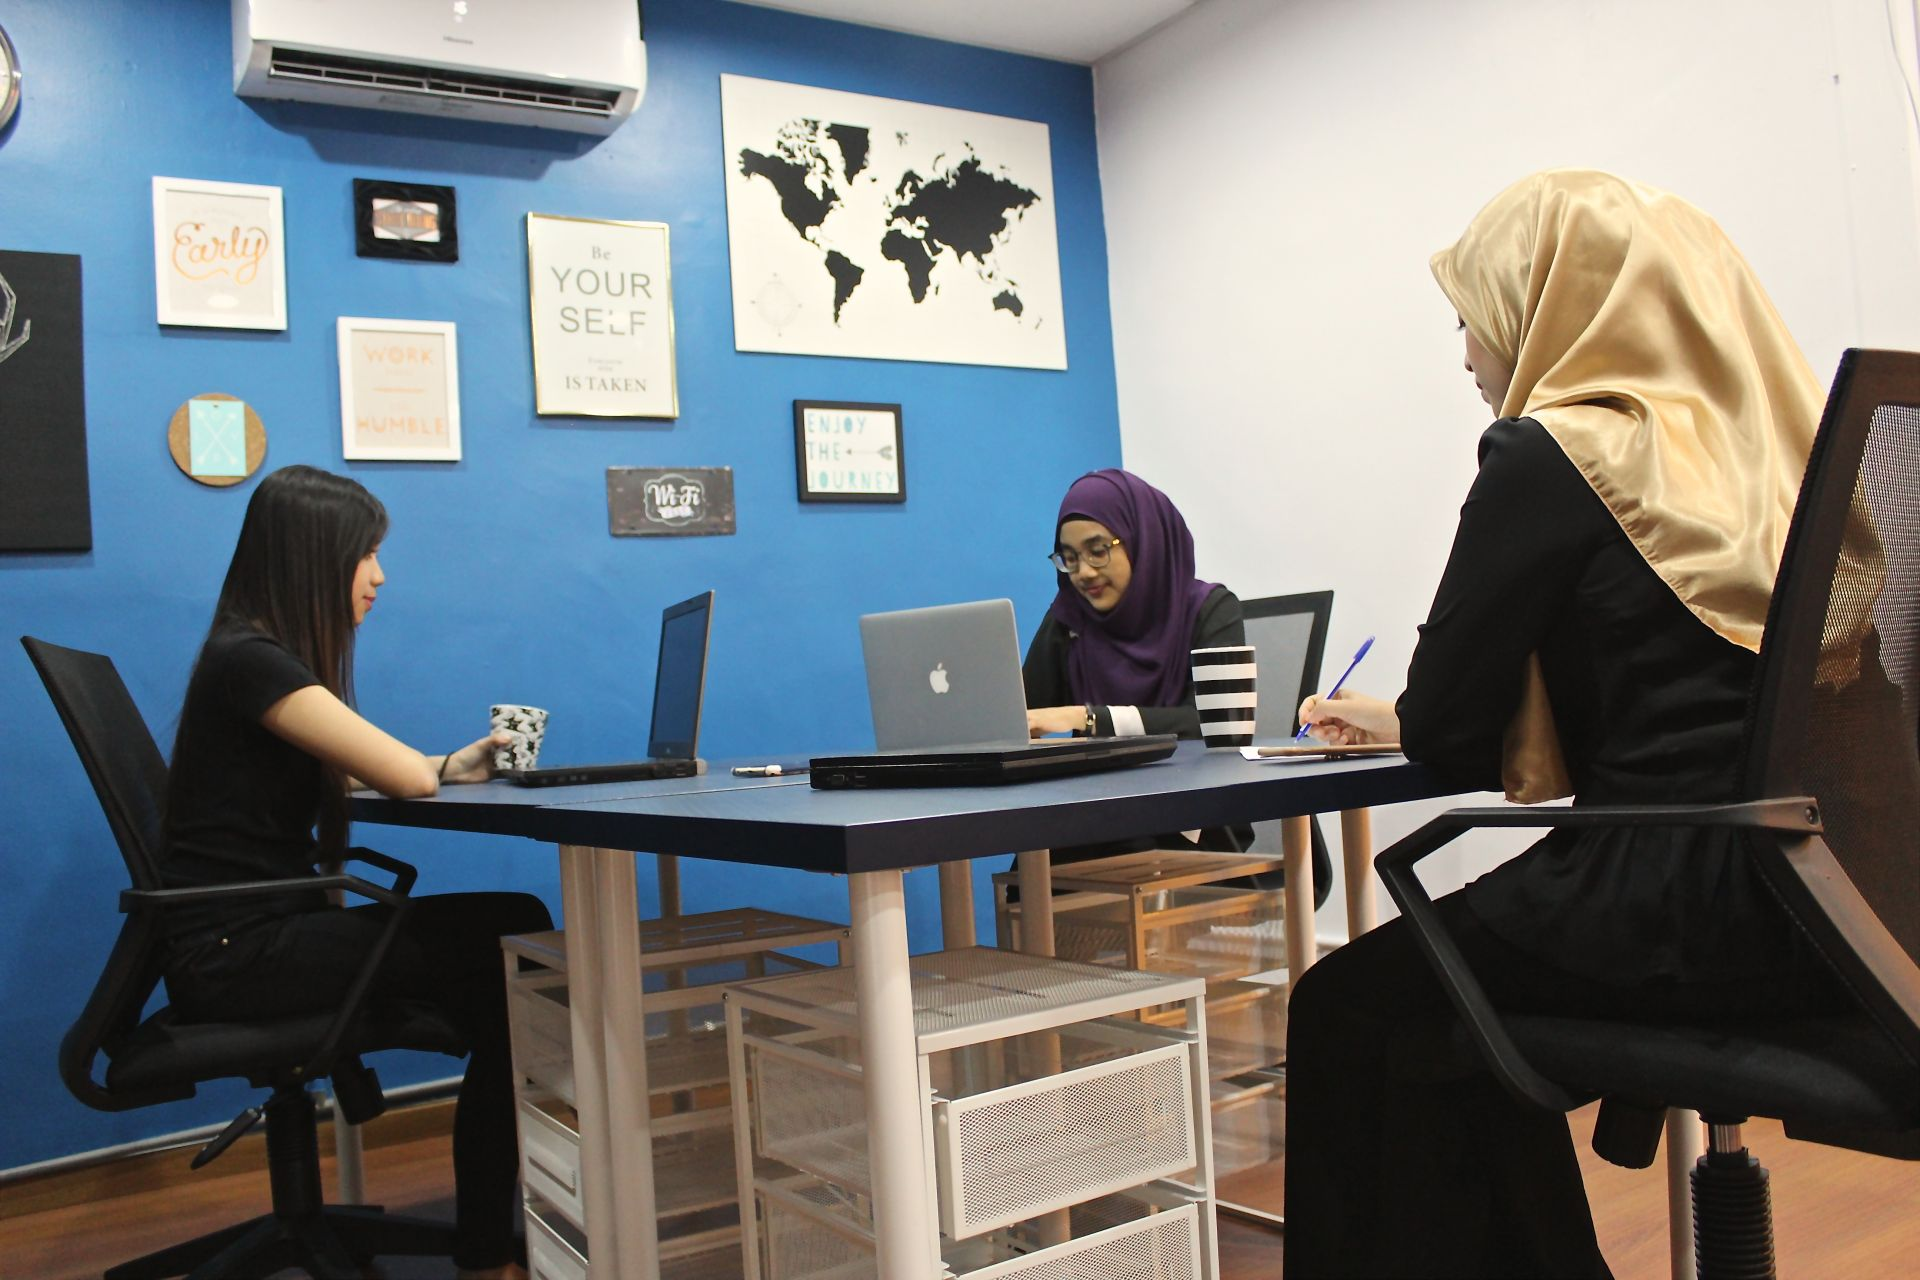 Habitat Coworking Cafe, Penang - Read Reviews & Book Online